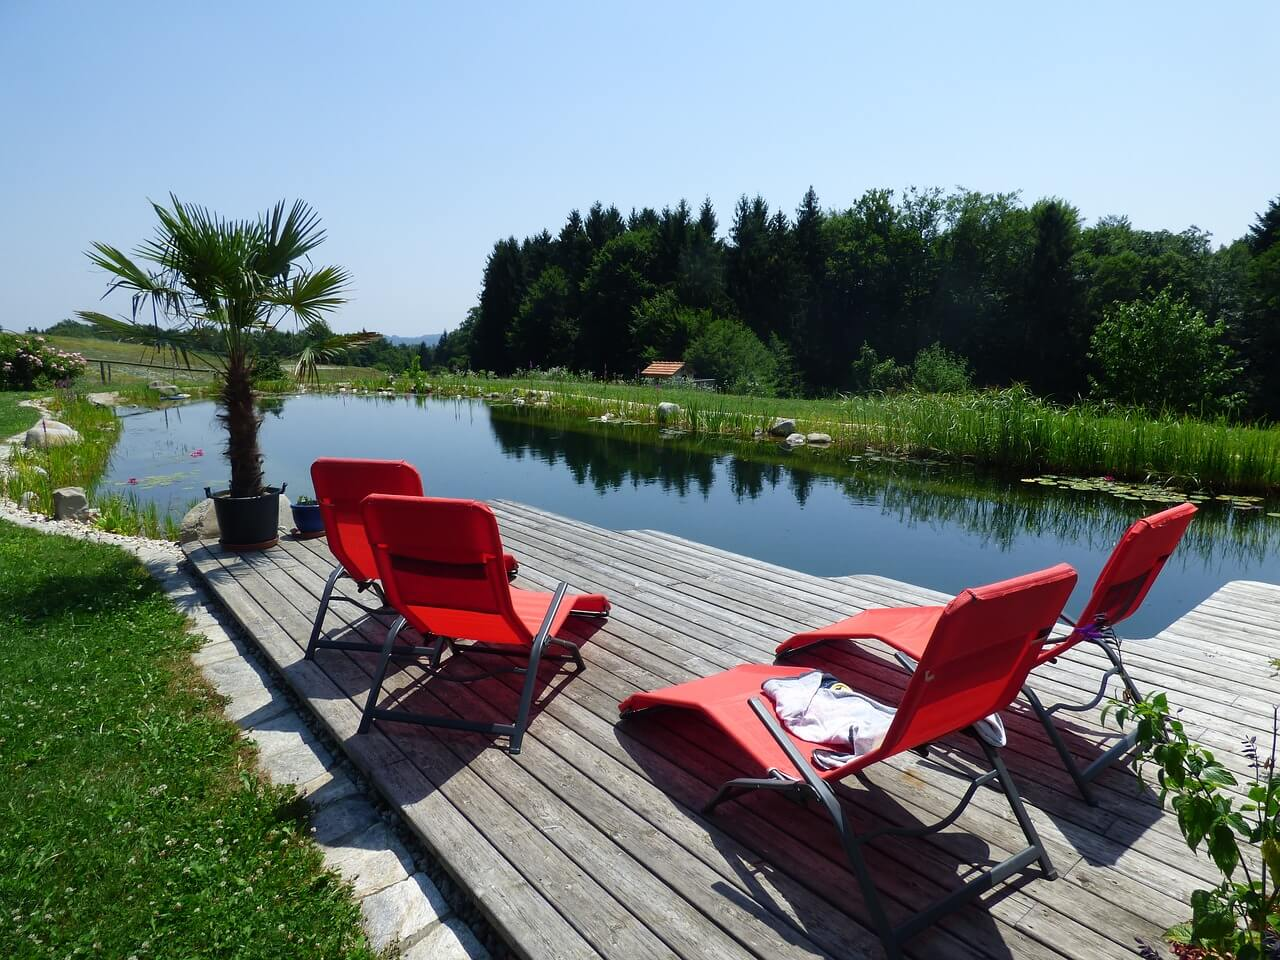 gartenteich so baust du den perfekten teich f r deinen garten. Black Bedroom Furniture Sets. Home Design Ideas